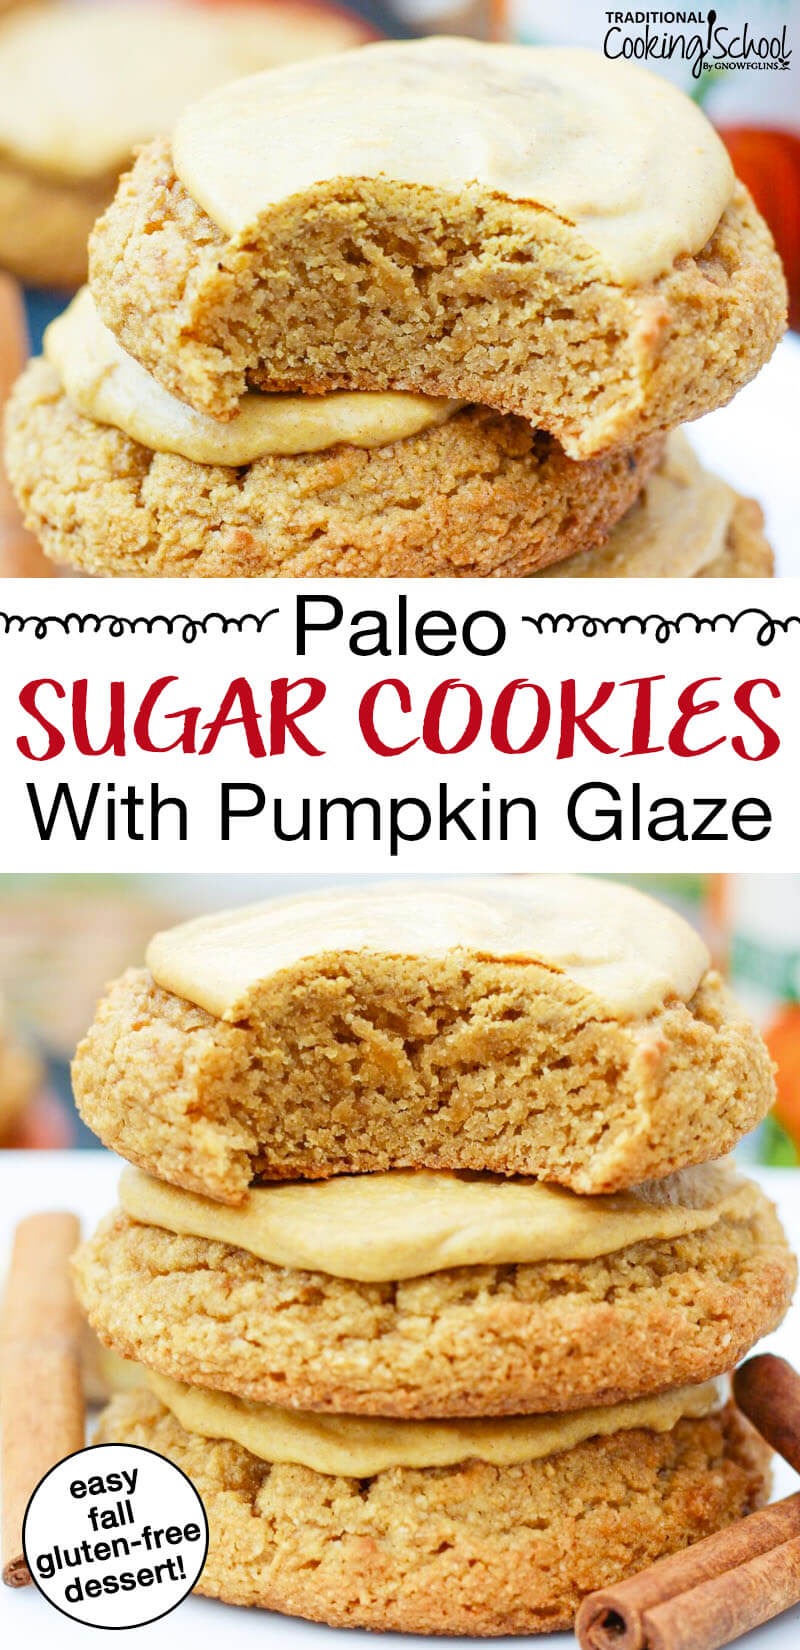 "photo collage of glazed sugar cookies and cinnamon sticks with text overlay: ""Paleo Sugar Cookies With Pumpkin Glaze"""